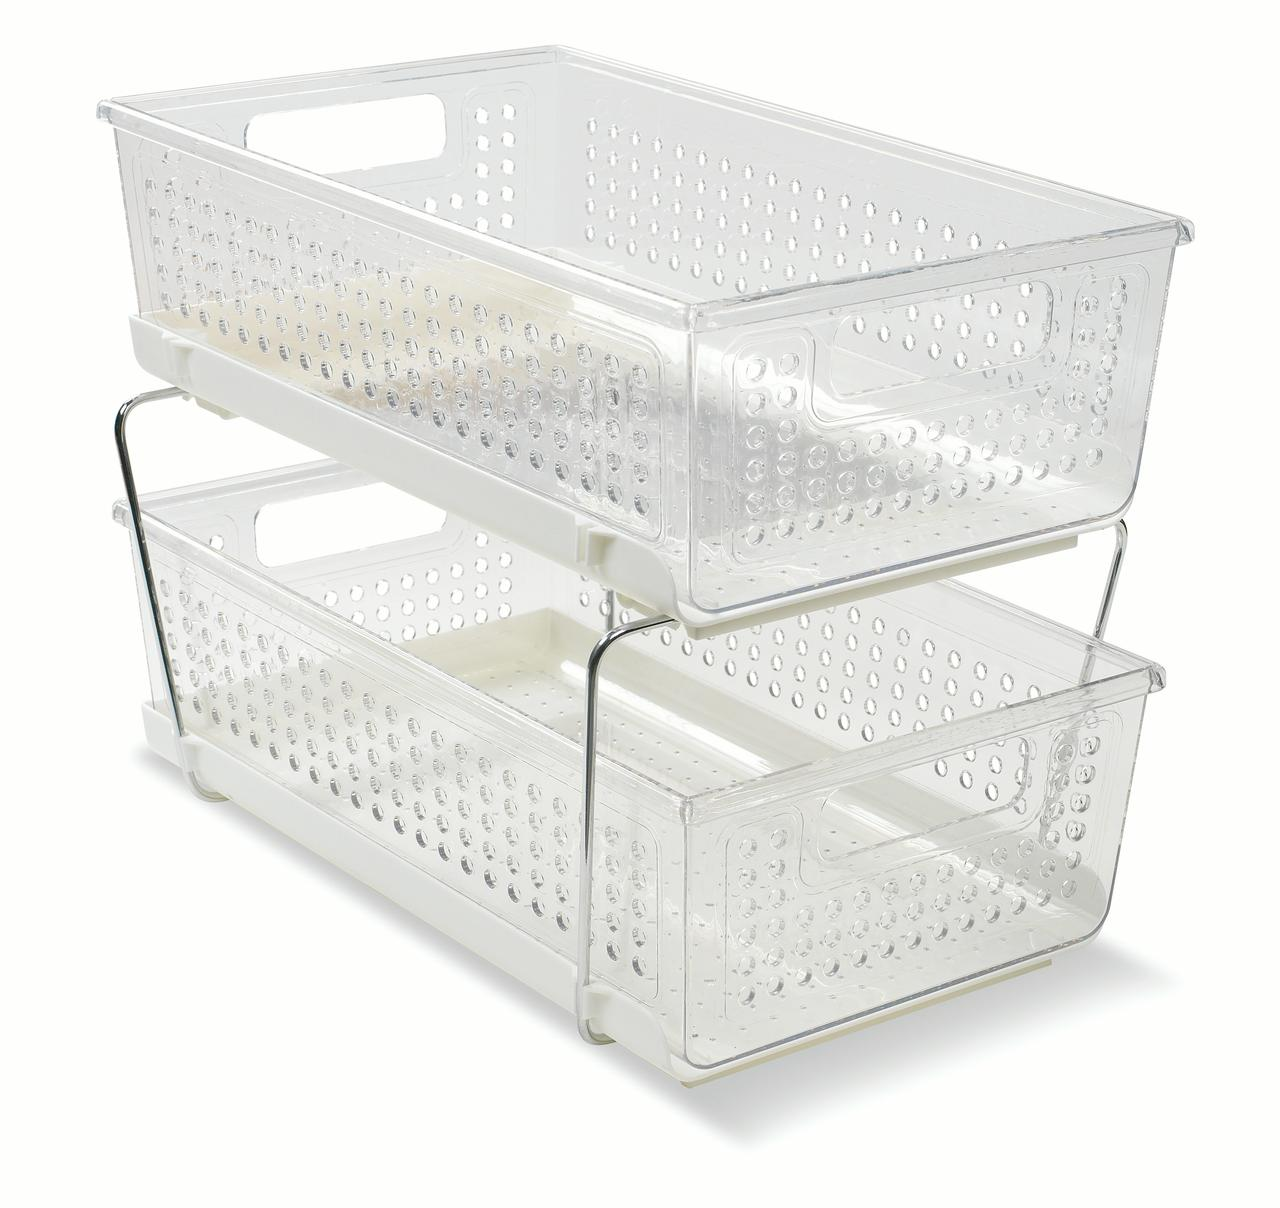 Madesmart Cabinet Storage Basket with 2 Levels and White Base